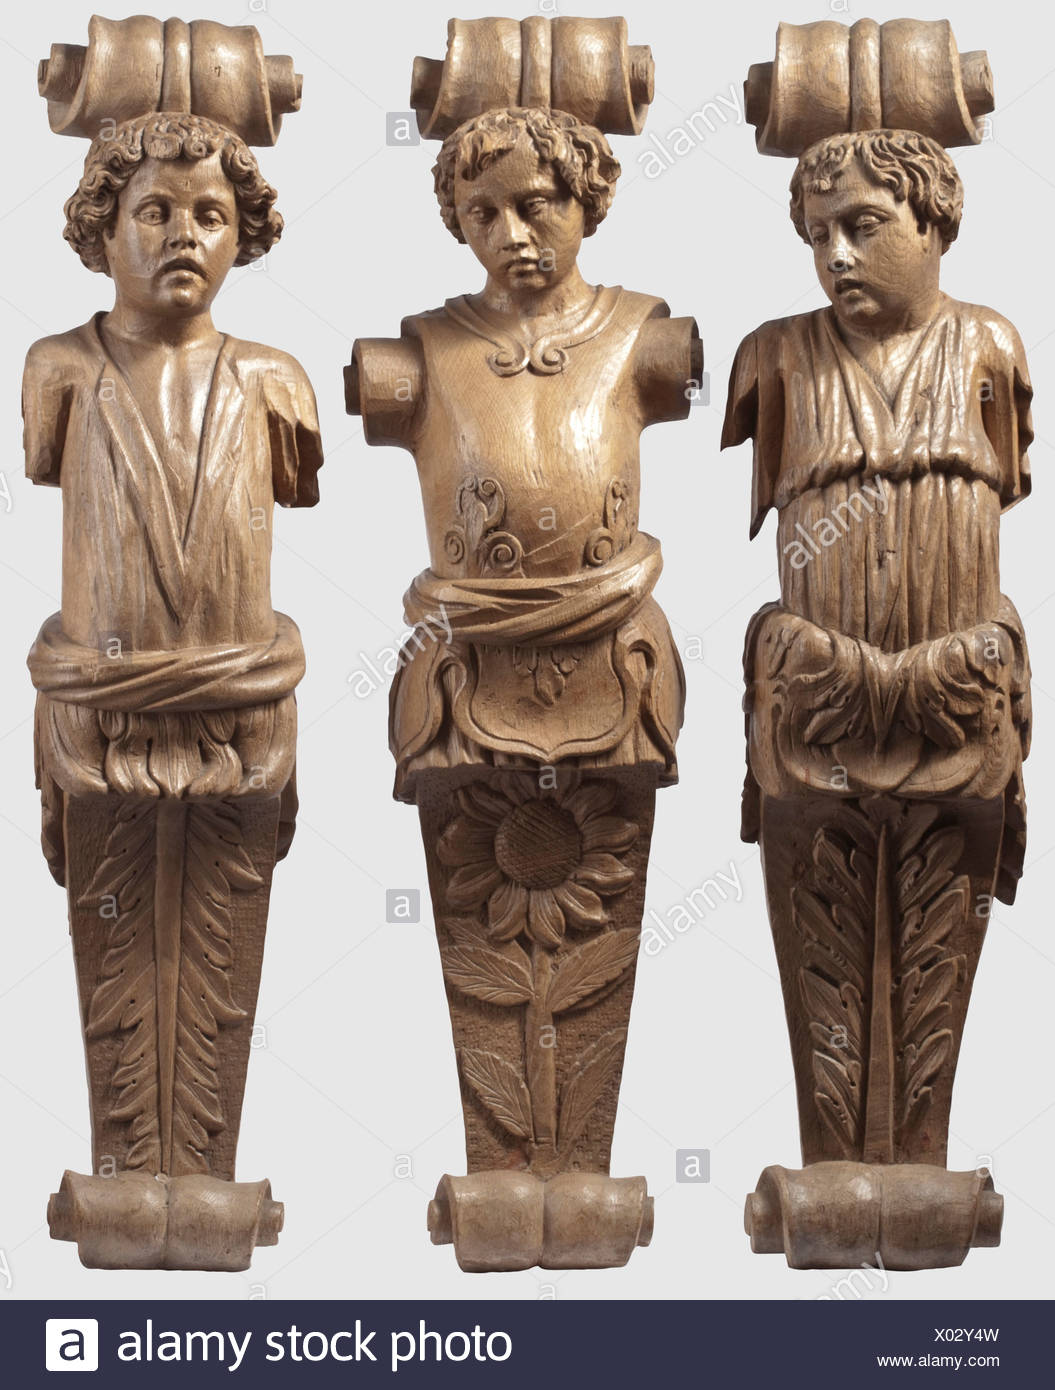 Three German caryatid pillars, 19th century in the style of the 17th century Elaborately carved, three quarter relief oak pillar overlays. Slightly different pillar figures in the shape of youths in ancient dress. The bases of each in the shape of massive volutes. Height of each 96 cm, historic, historical, 19th century, handicrafts, handcraft, craft, object, objects, stills, clipping, clippings, cut out, cut-out, cut-outs, sculpture, sculptures, statuette, figurine, figurines, statuettes, fine arts, art, Additional-Rights-Clearences-NA - Stock Image